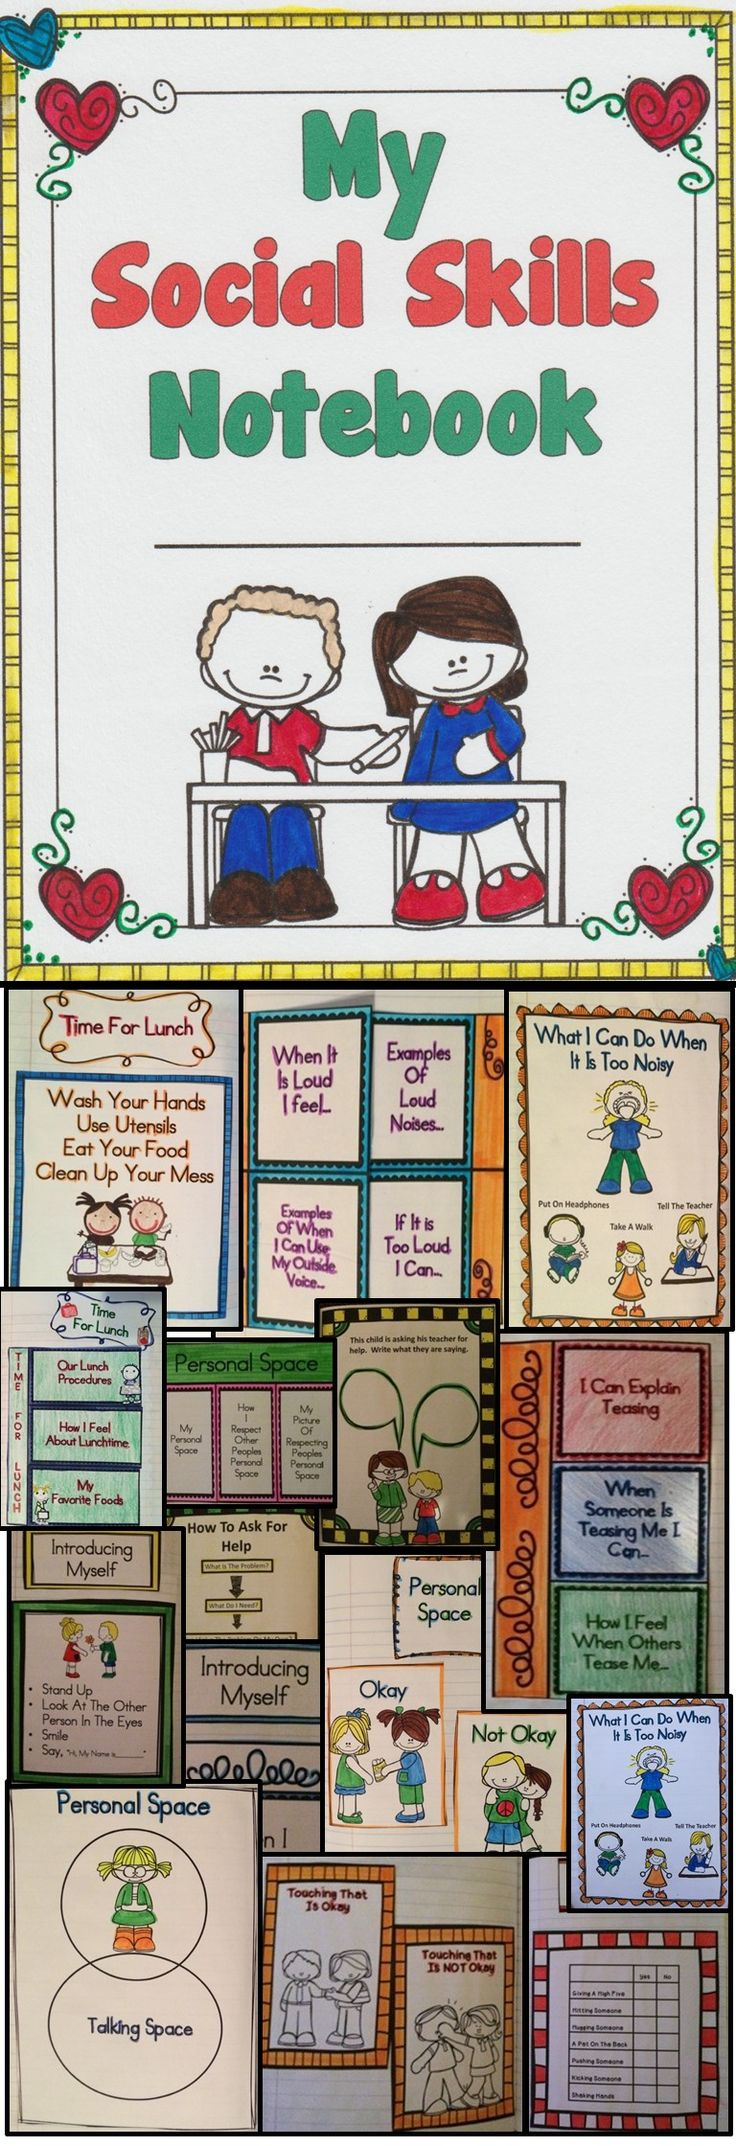 This interactive student notebook provides engaging lessons to teach your students all about social skills.